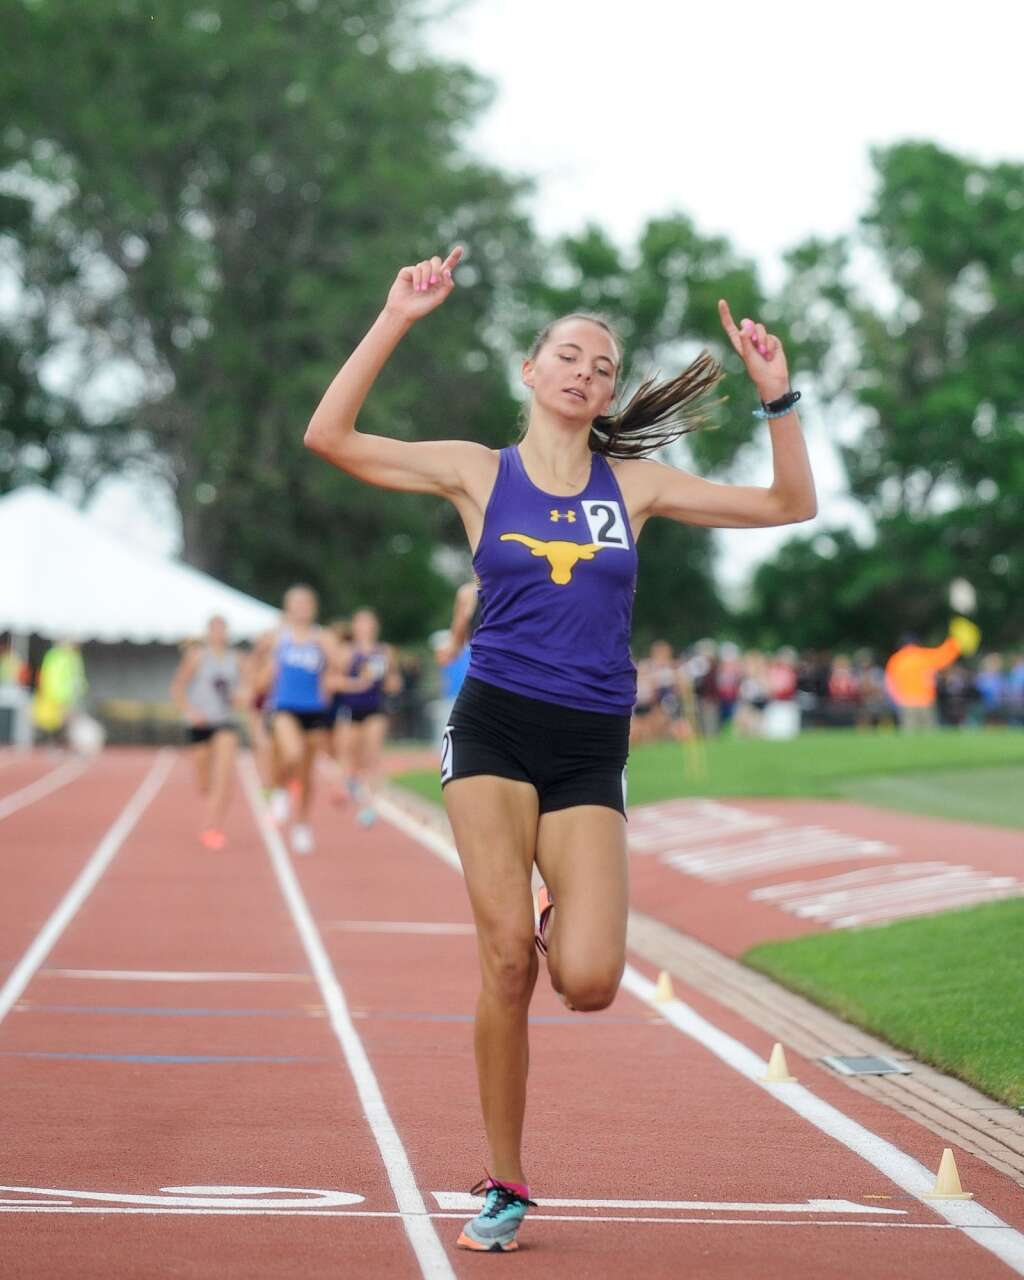 Basalt High School sophomore Katelyn Maley raises her hands as she crosses the finish line first to win the Class 3A girls' 1,600-meter run at the state track and field championships on Saturday, June 26, 2021, at Jefferson County Stadium in Lakewood. Photo by Shelby Reardon/Steamboat Pilot & Today.